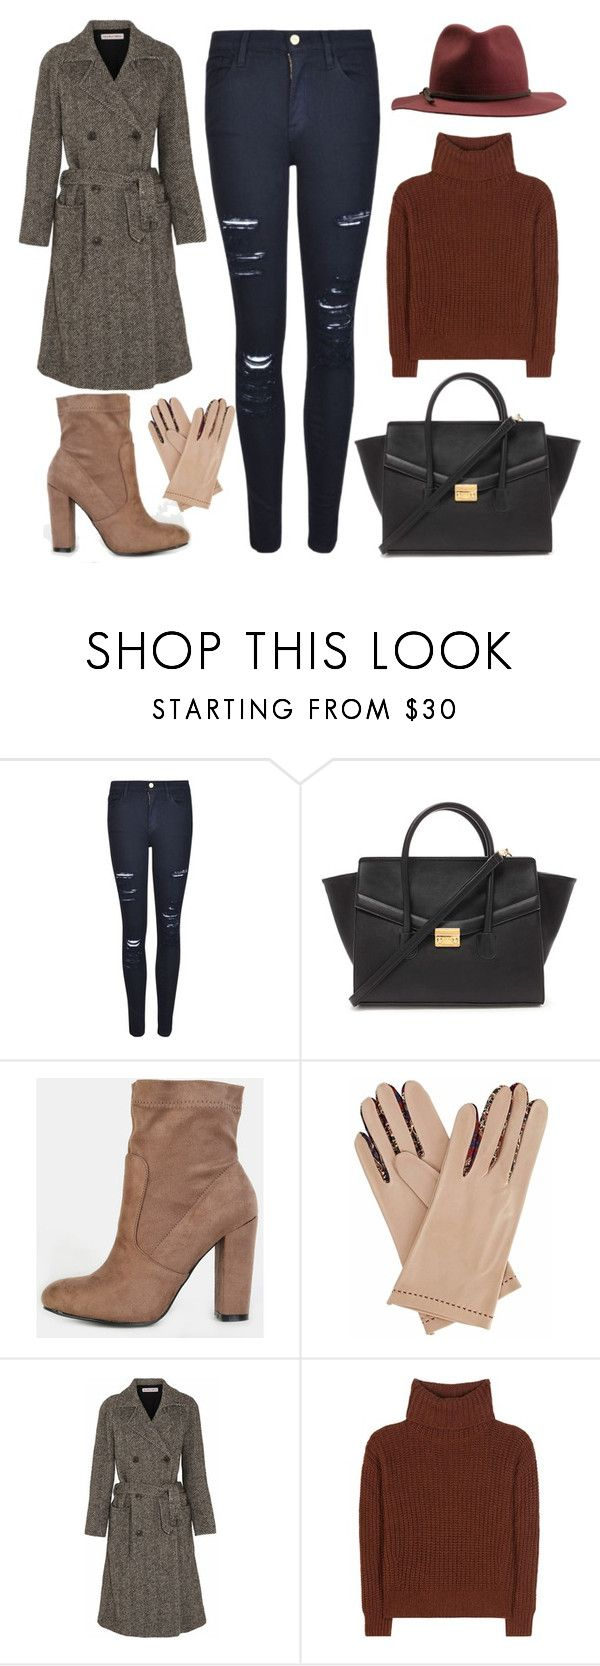 """""""Have A Nice Fall Season"""" by hiddensoulmemories ❤ liked on Polyvore featuring Frame, Forever 21, Gizelle Renee, See by Chloé, Loro Piana and Brixton"""